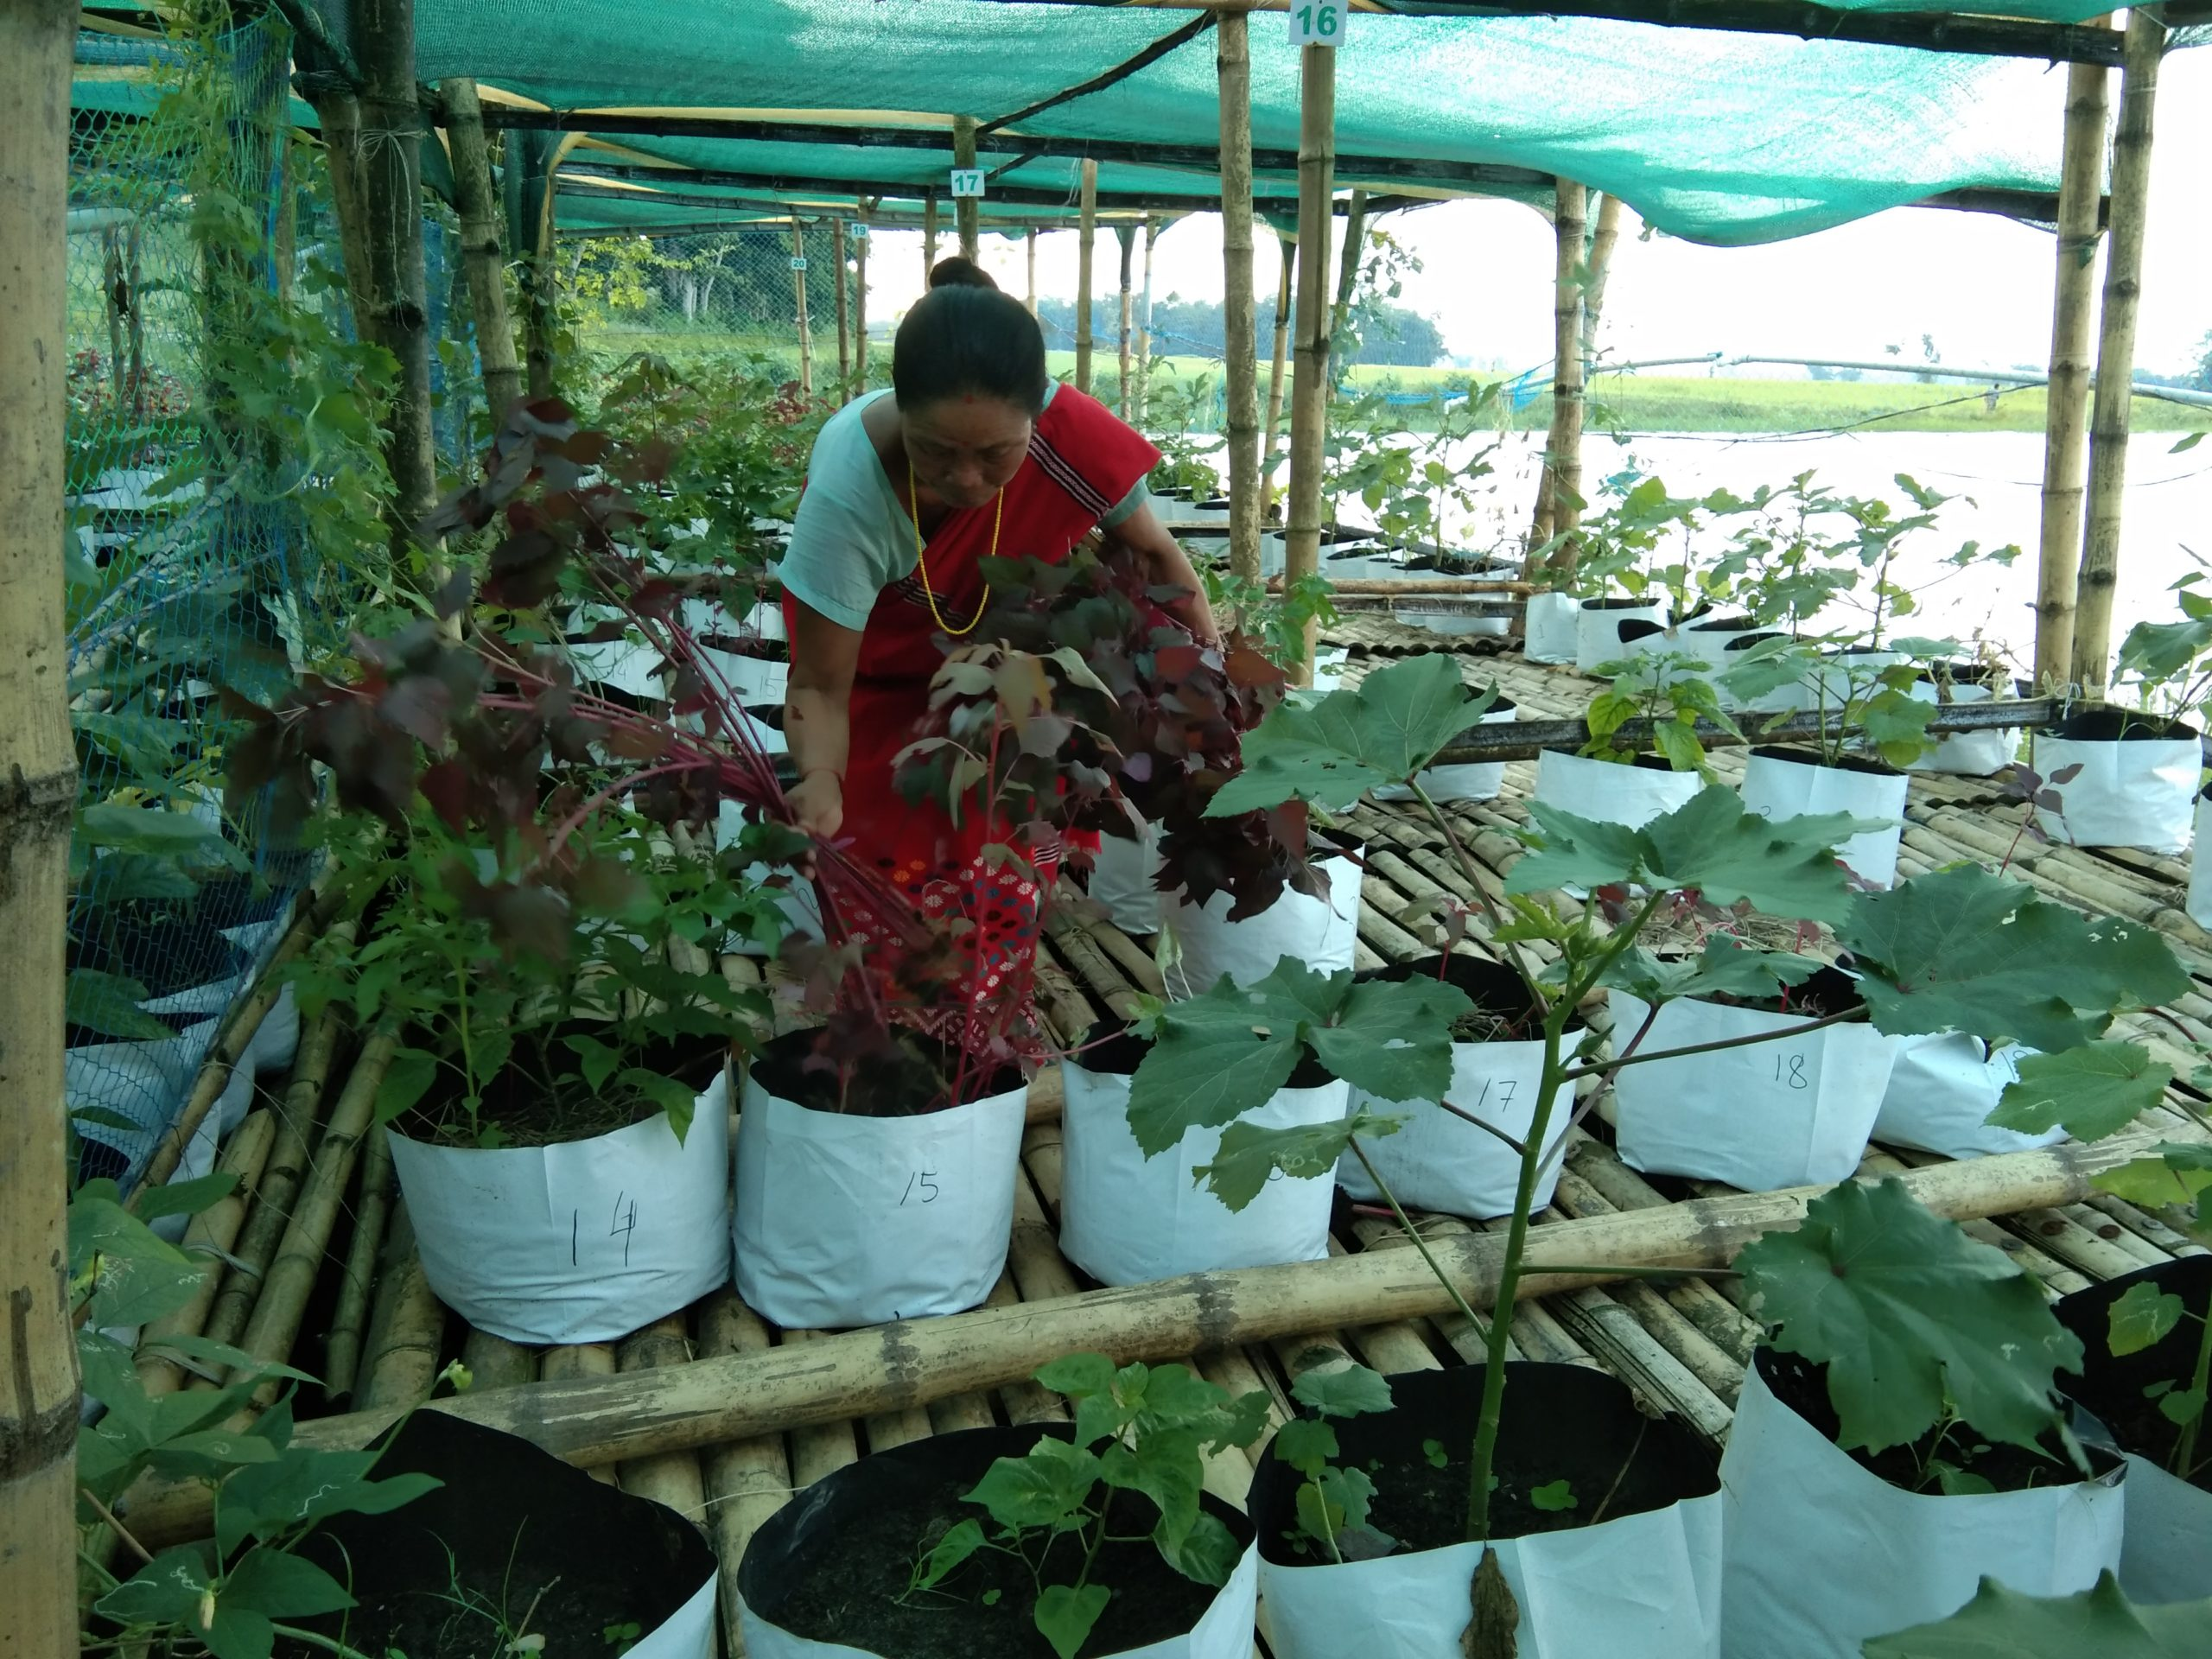 A farmer tends her crops on a floating platform. This method of growing vegetables and herbs has helped farmers in Majuli deal with flooding and irregular rainfall. (Image: South Asian Forum for Environment)